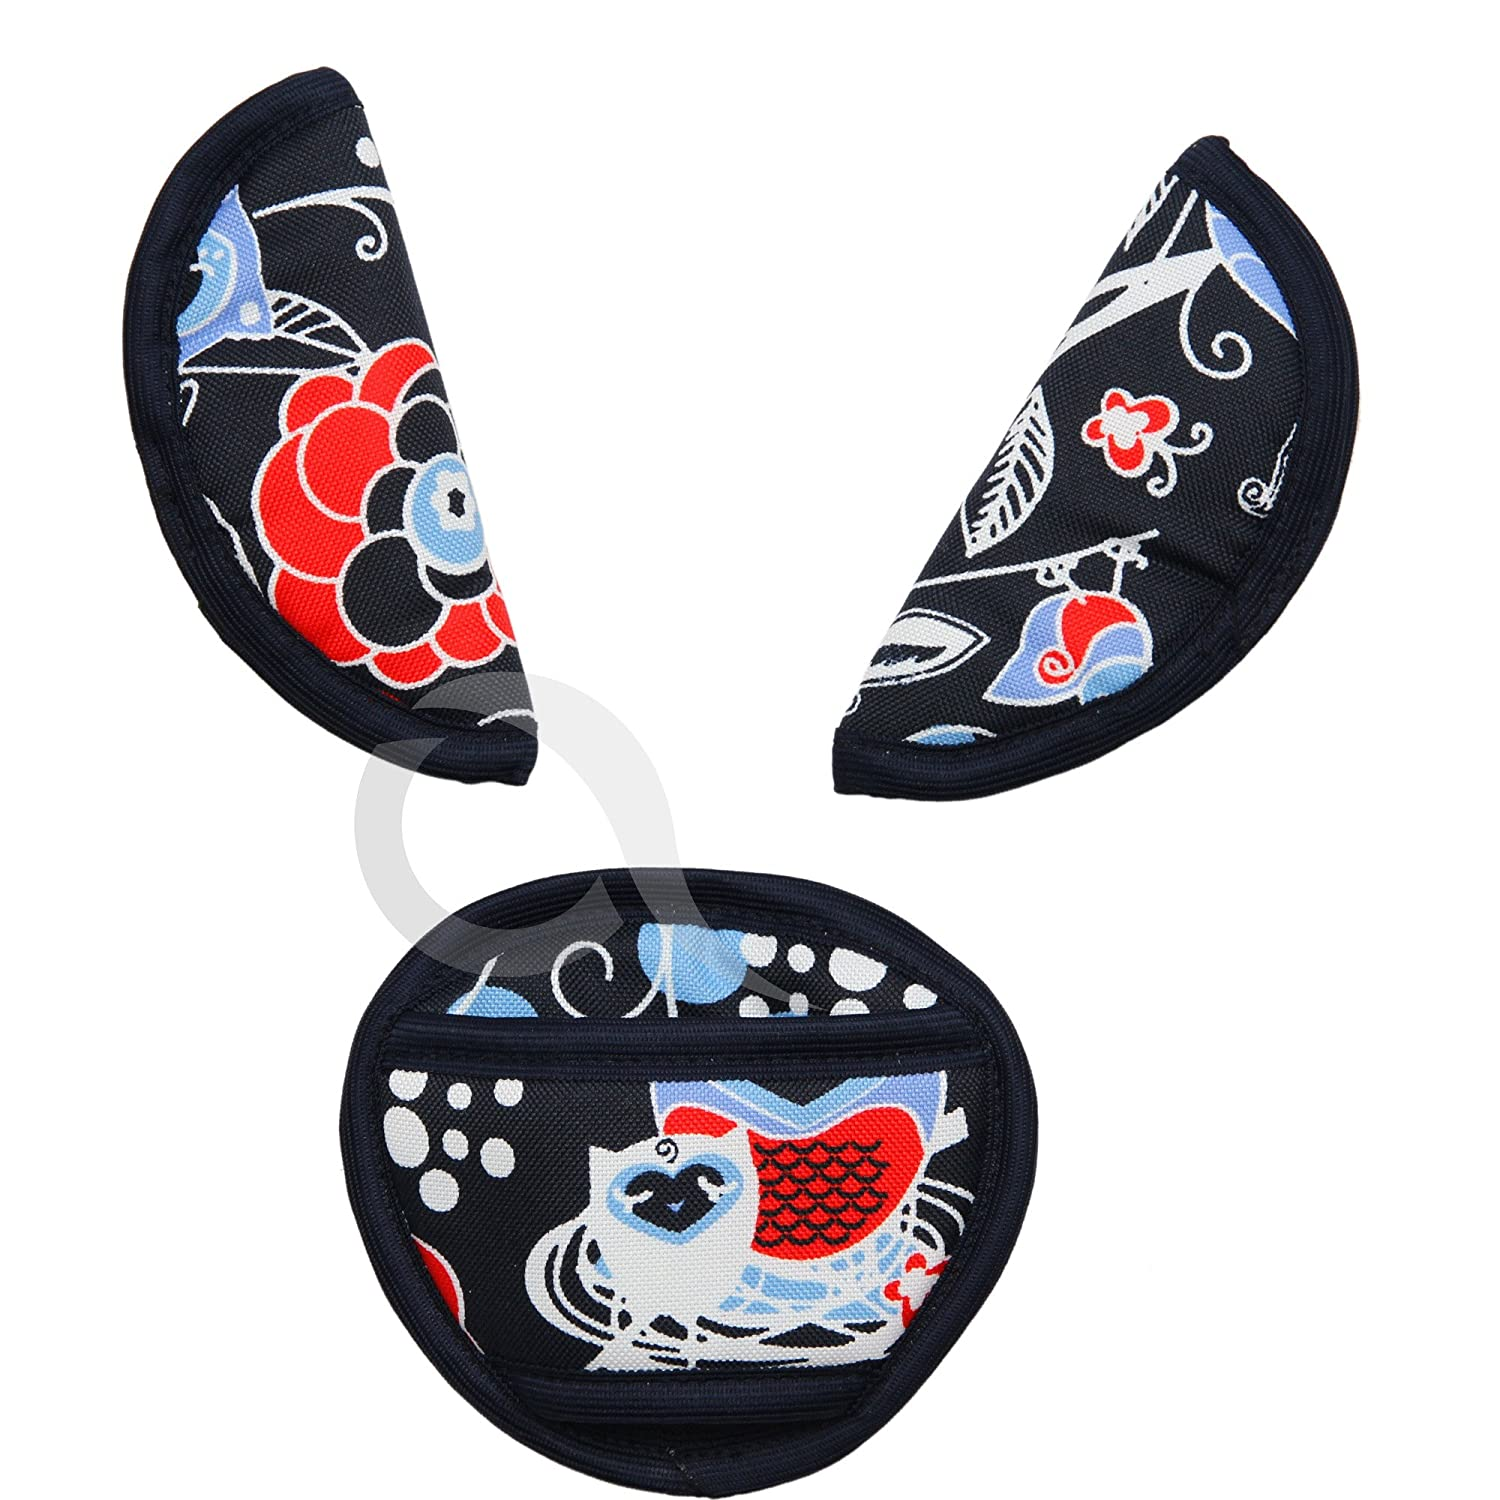 BELTS PADS SHOULDER STRAP & CROTCH cover UNIVERSAL Fits most buggy, stroller. car seat straps P044 olobaby